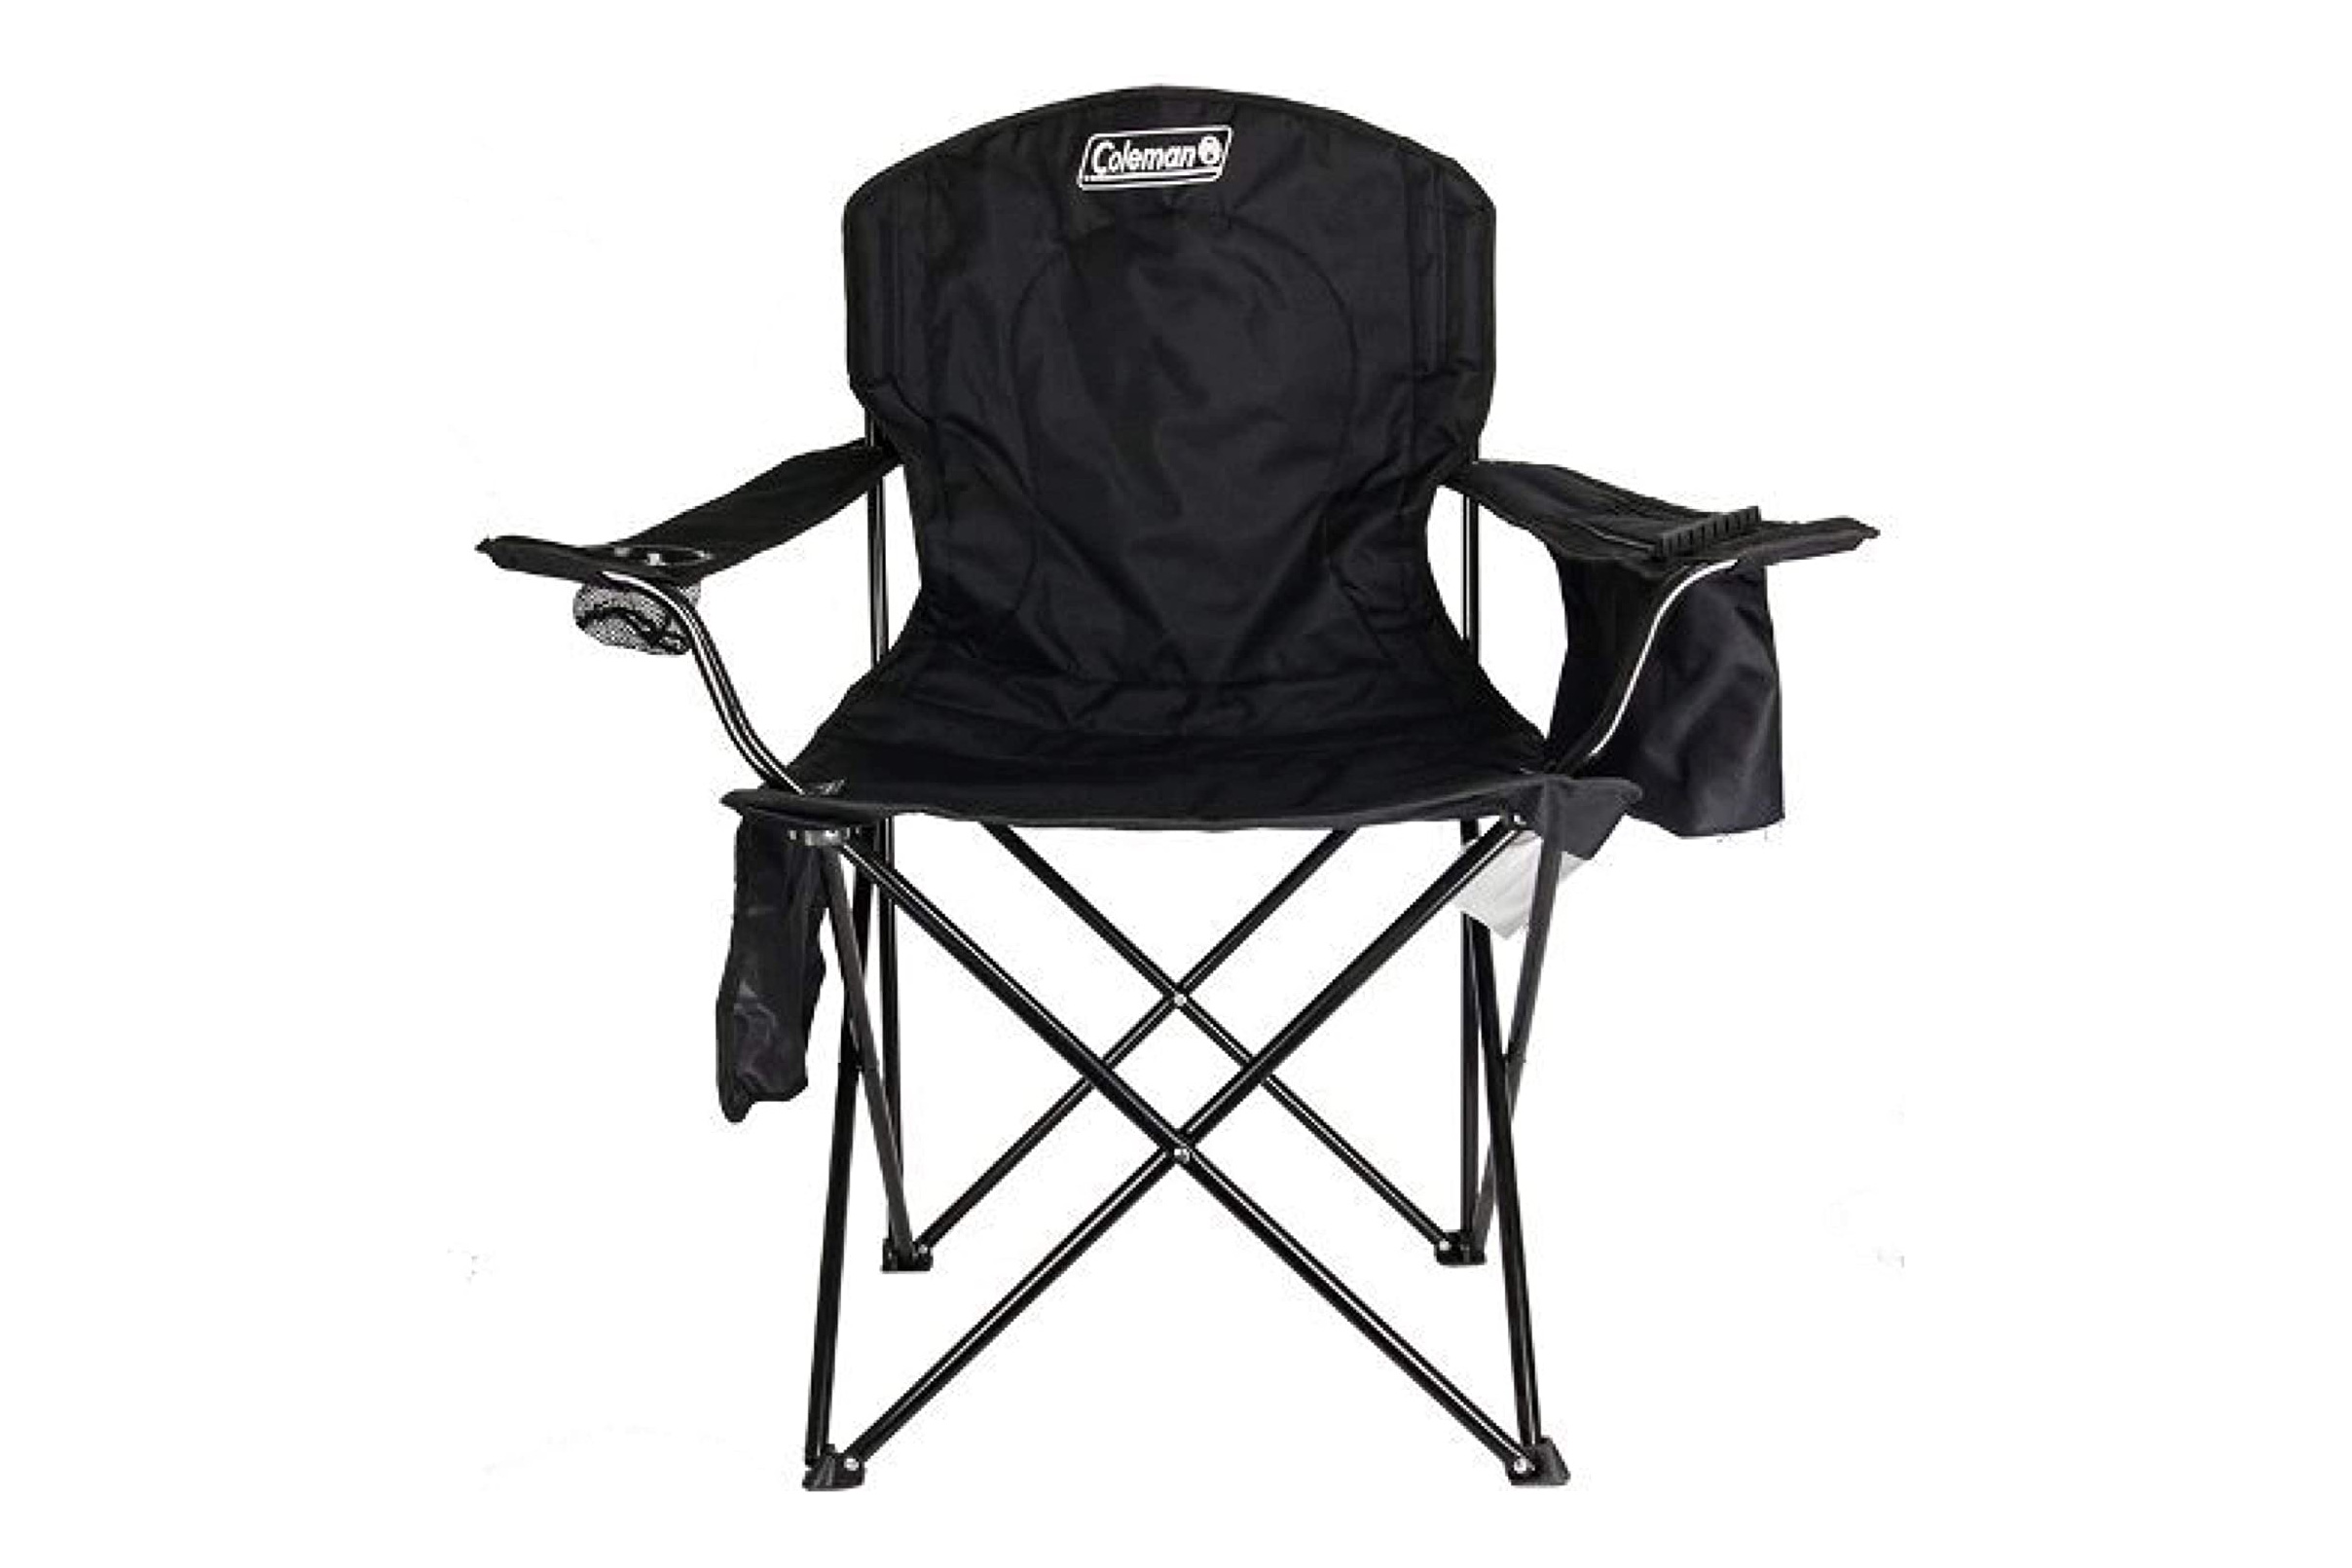 coleman portable quad chair with cooler